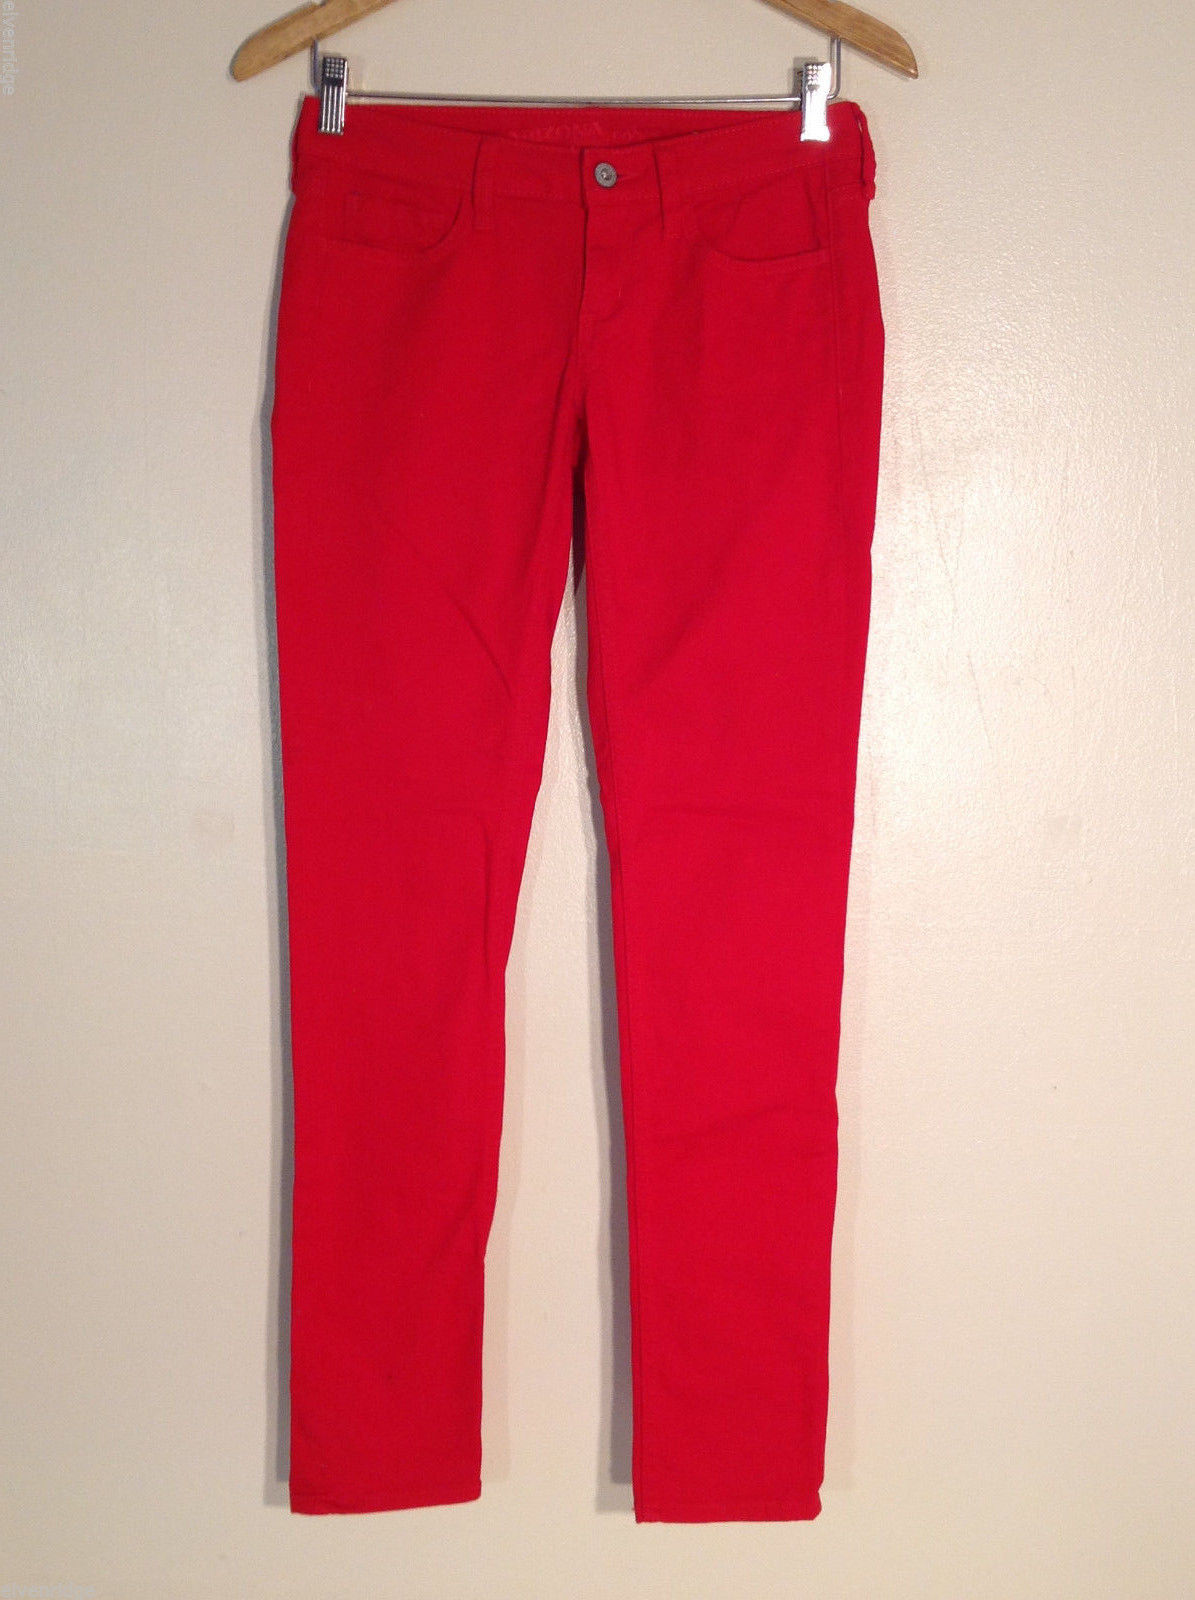 Arizona Jeans Co. Size 3 US 8 M Colored Jeans Red Denim Stretchy Super Skinny